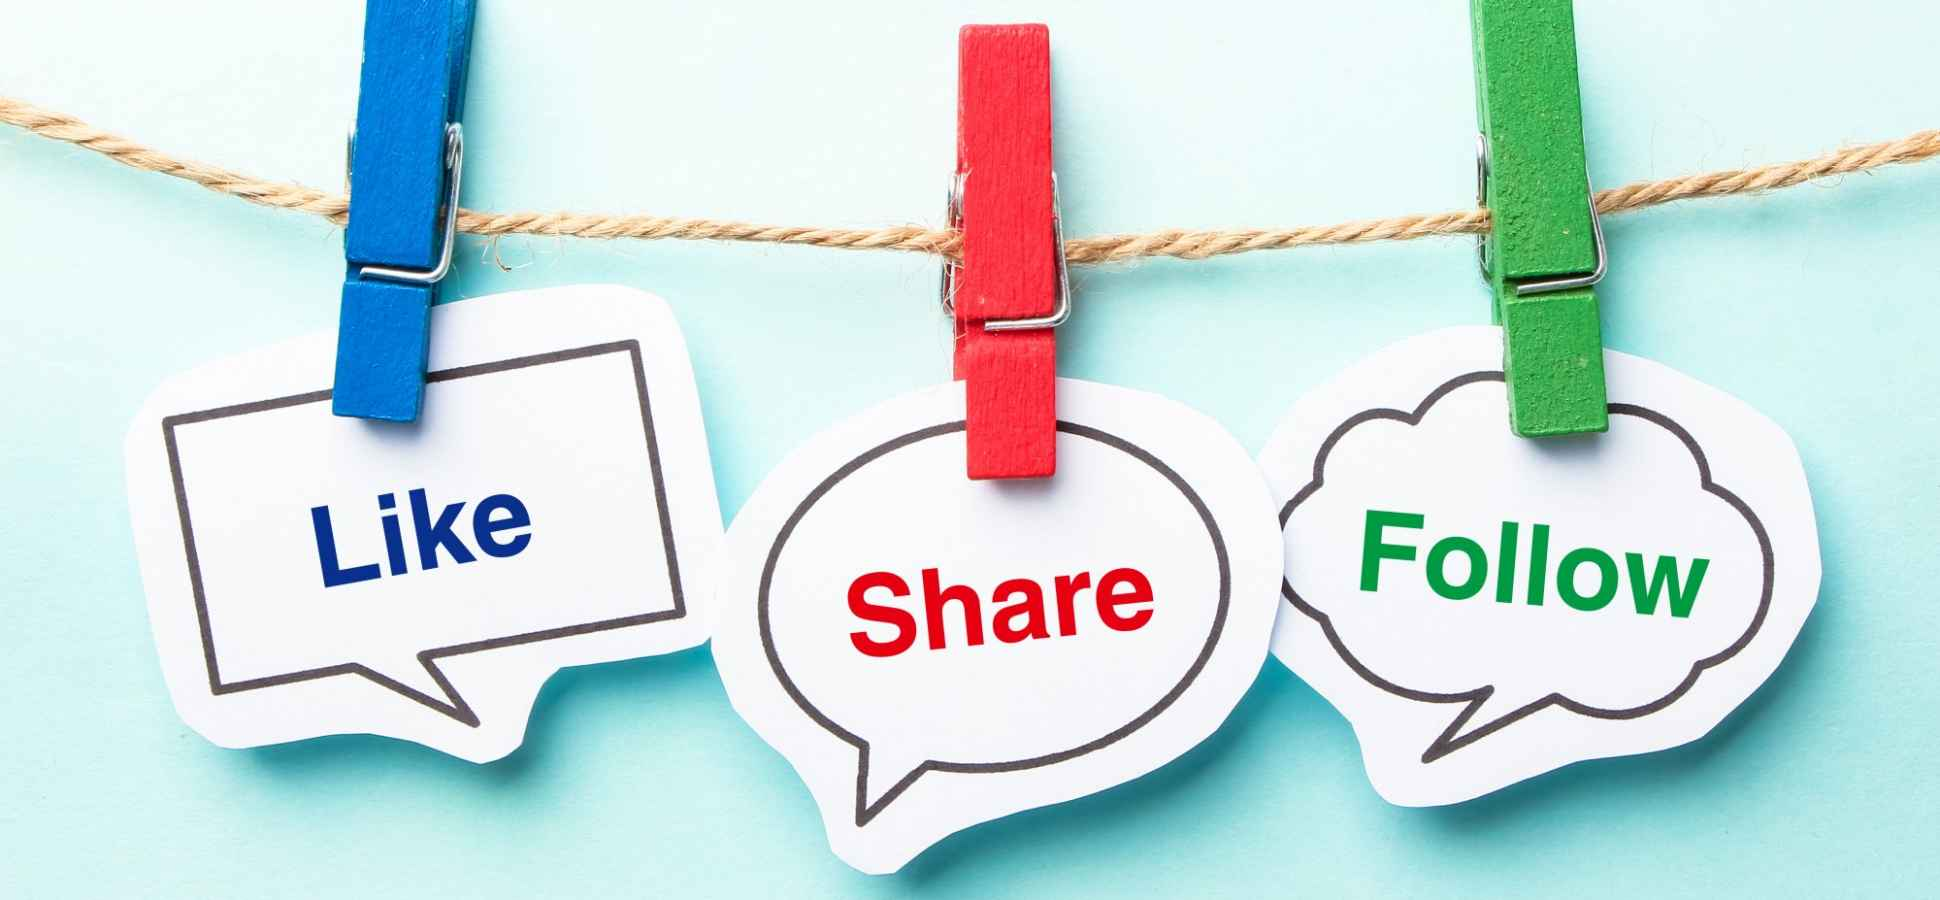 A Small Change on Facebook May Require Major Updates for Your Website